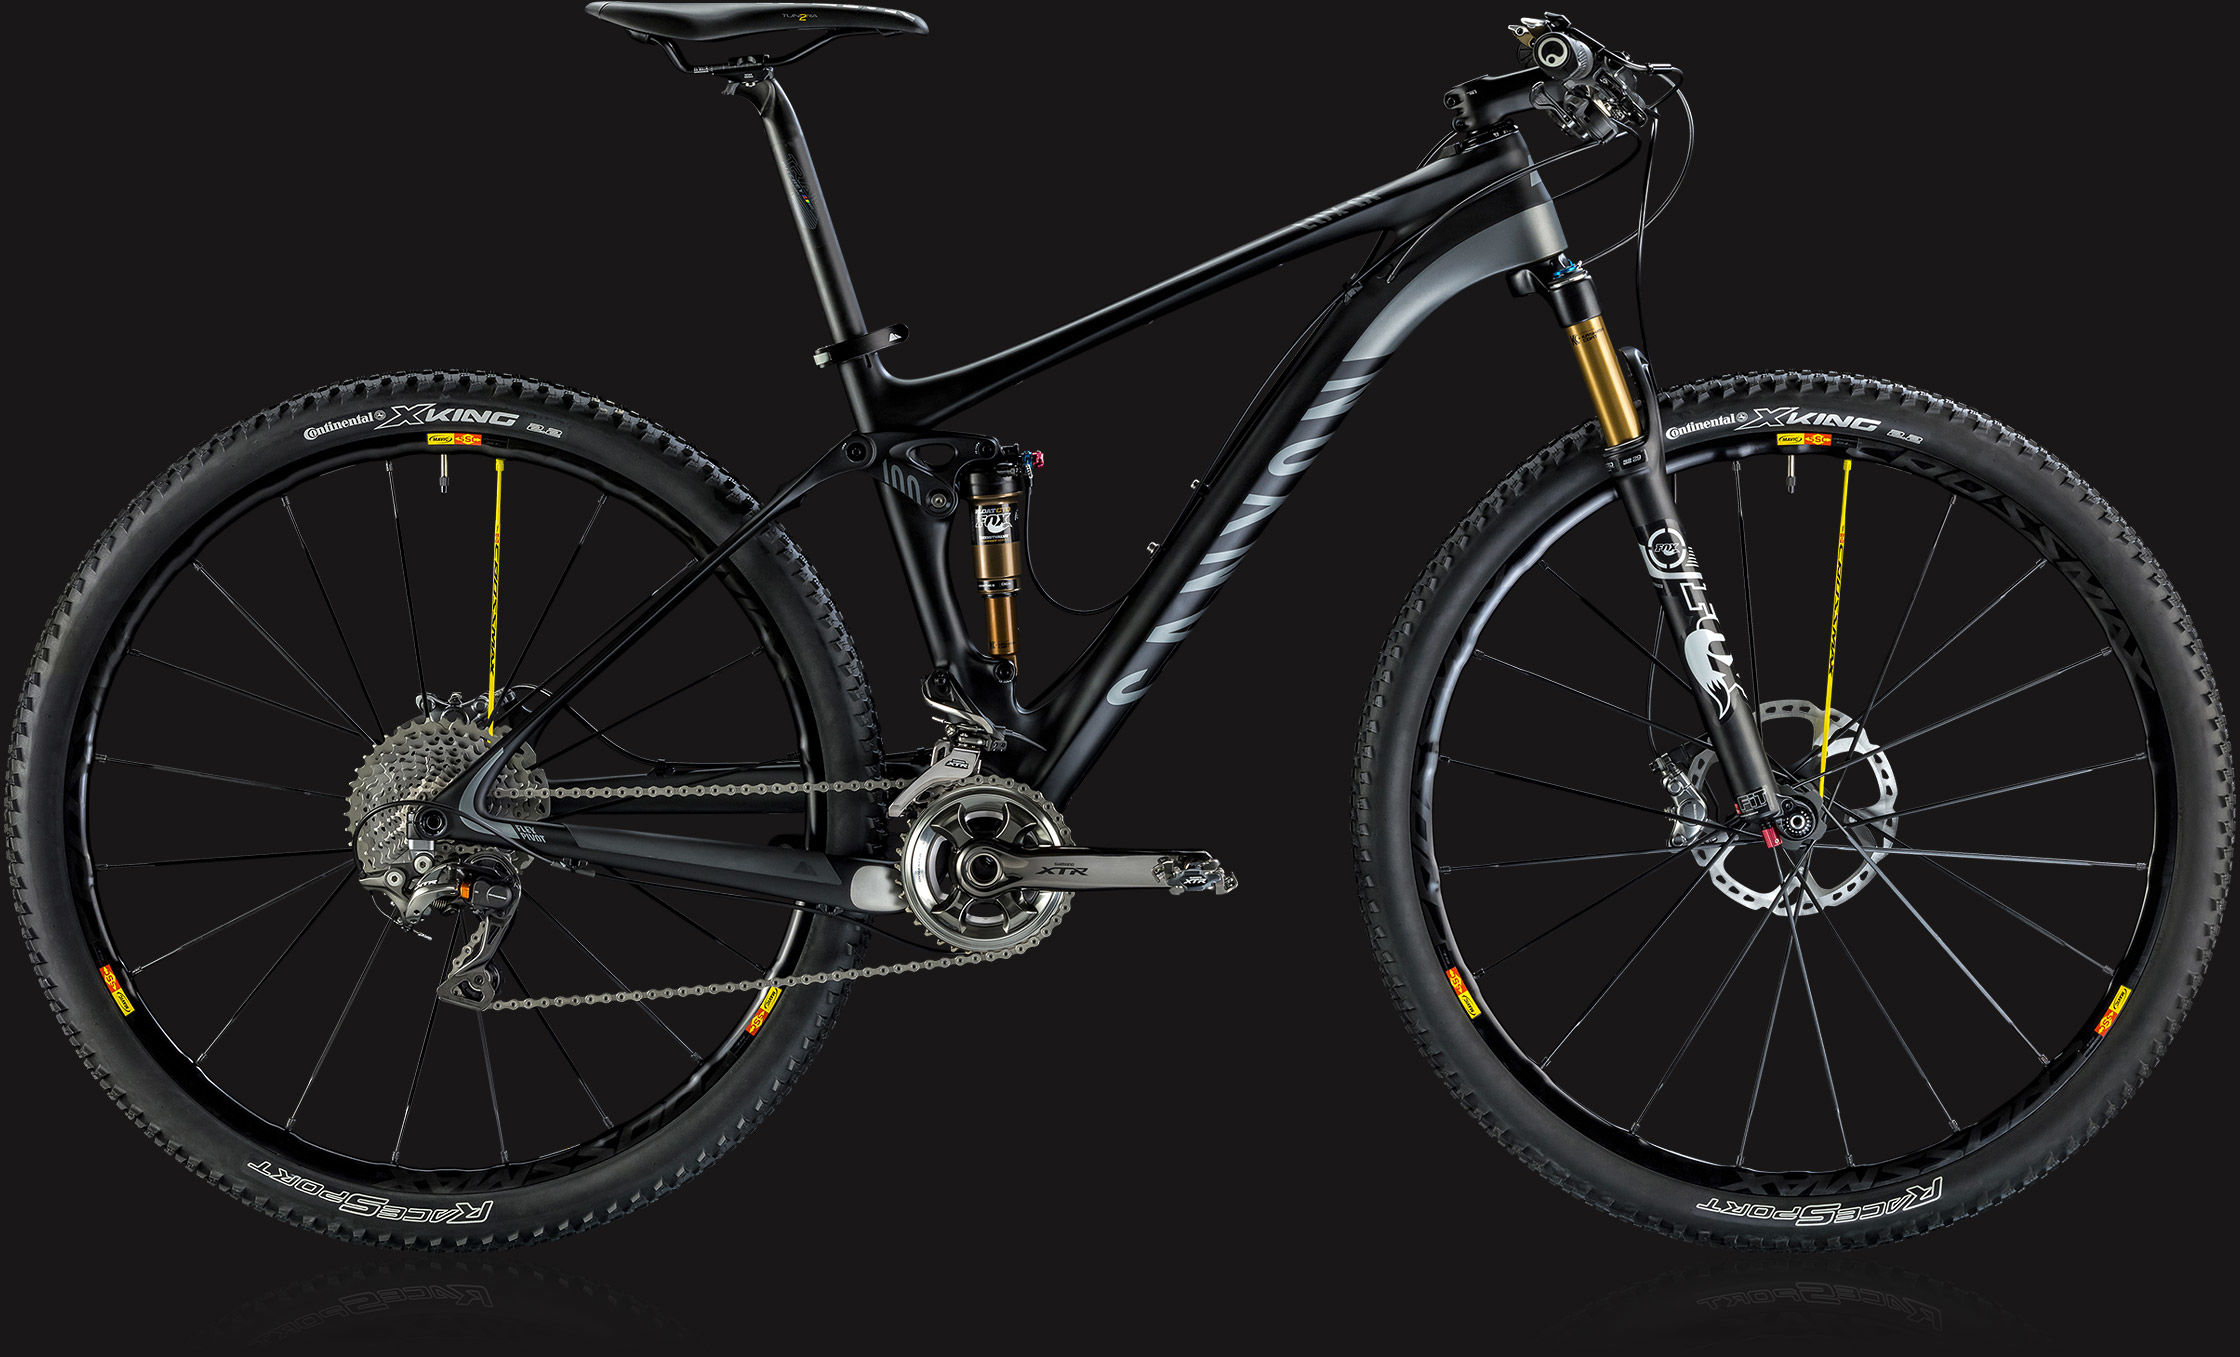 Canyon Lux Cf 9 9 Sl 2015 Review The Bike List